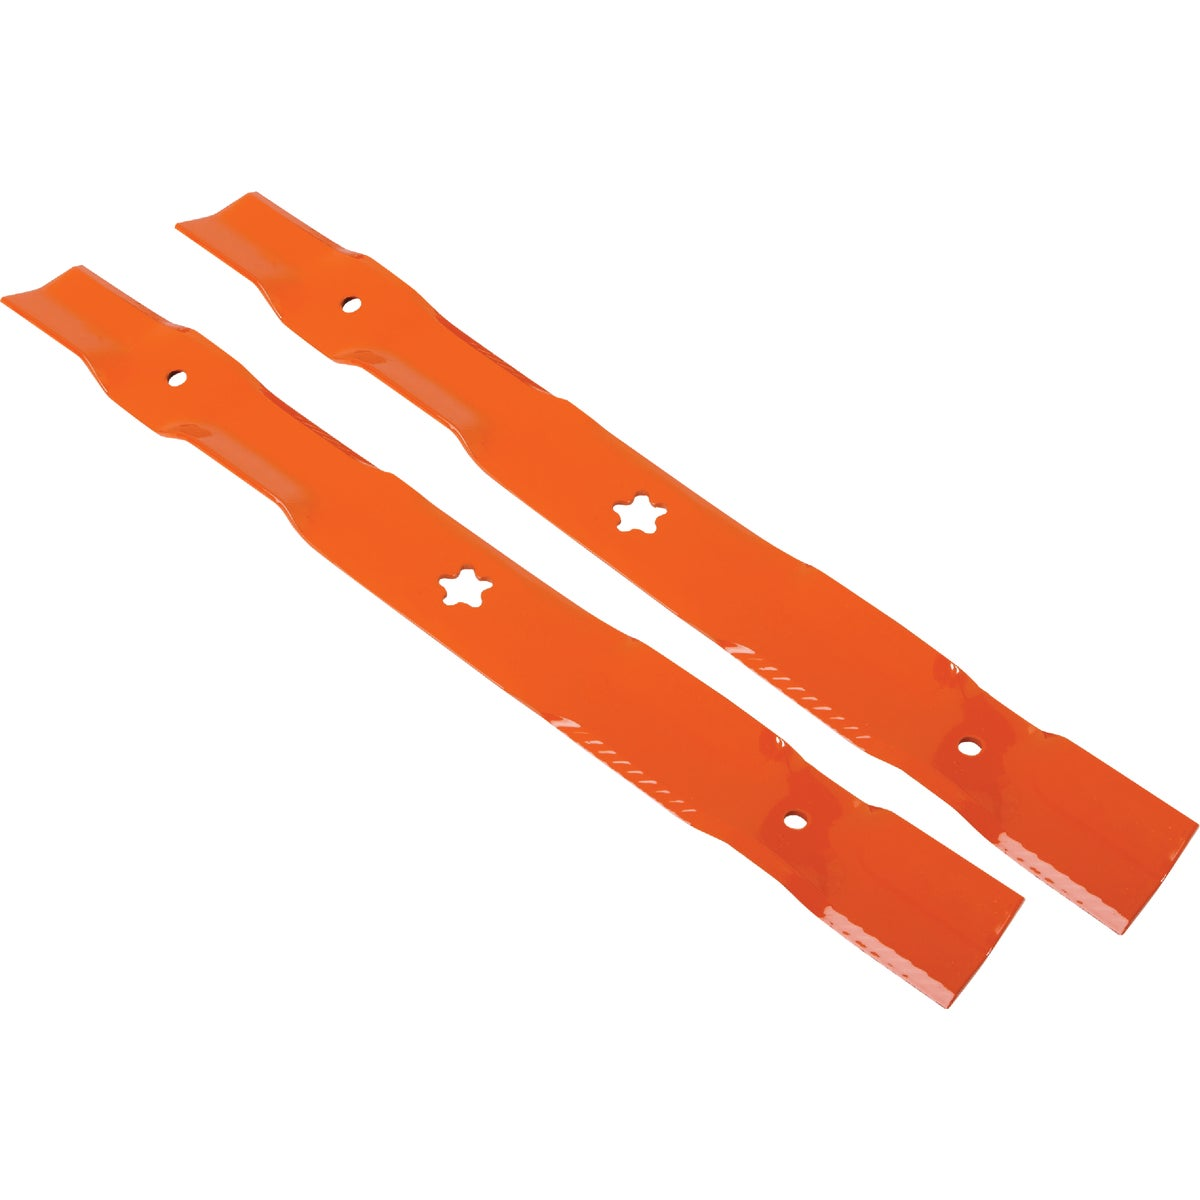 "46"" DECK HOP W BLADE SET - PP21011 by Husqvarna Outdoor"